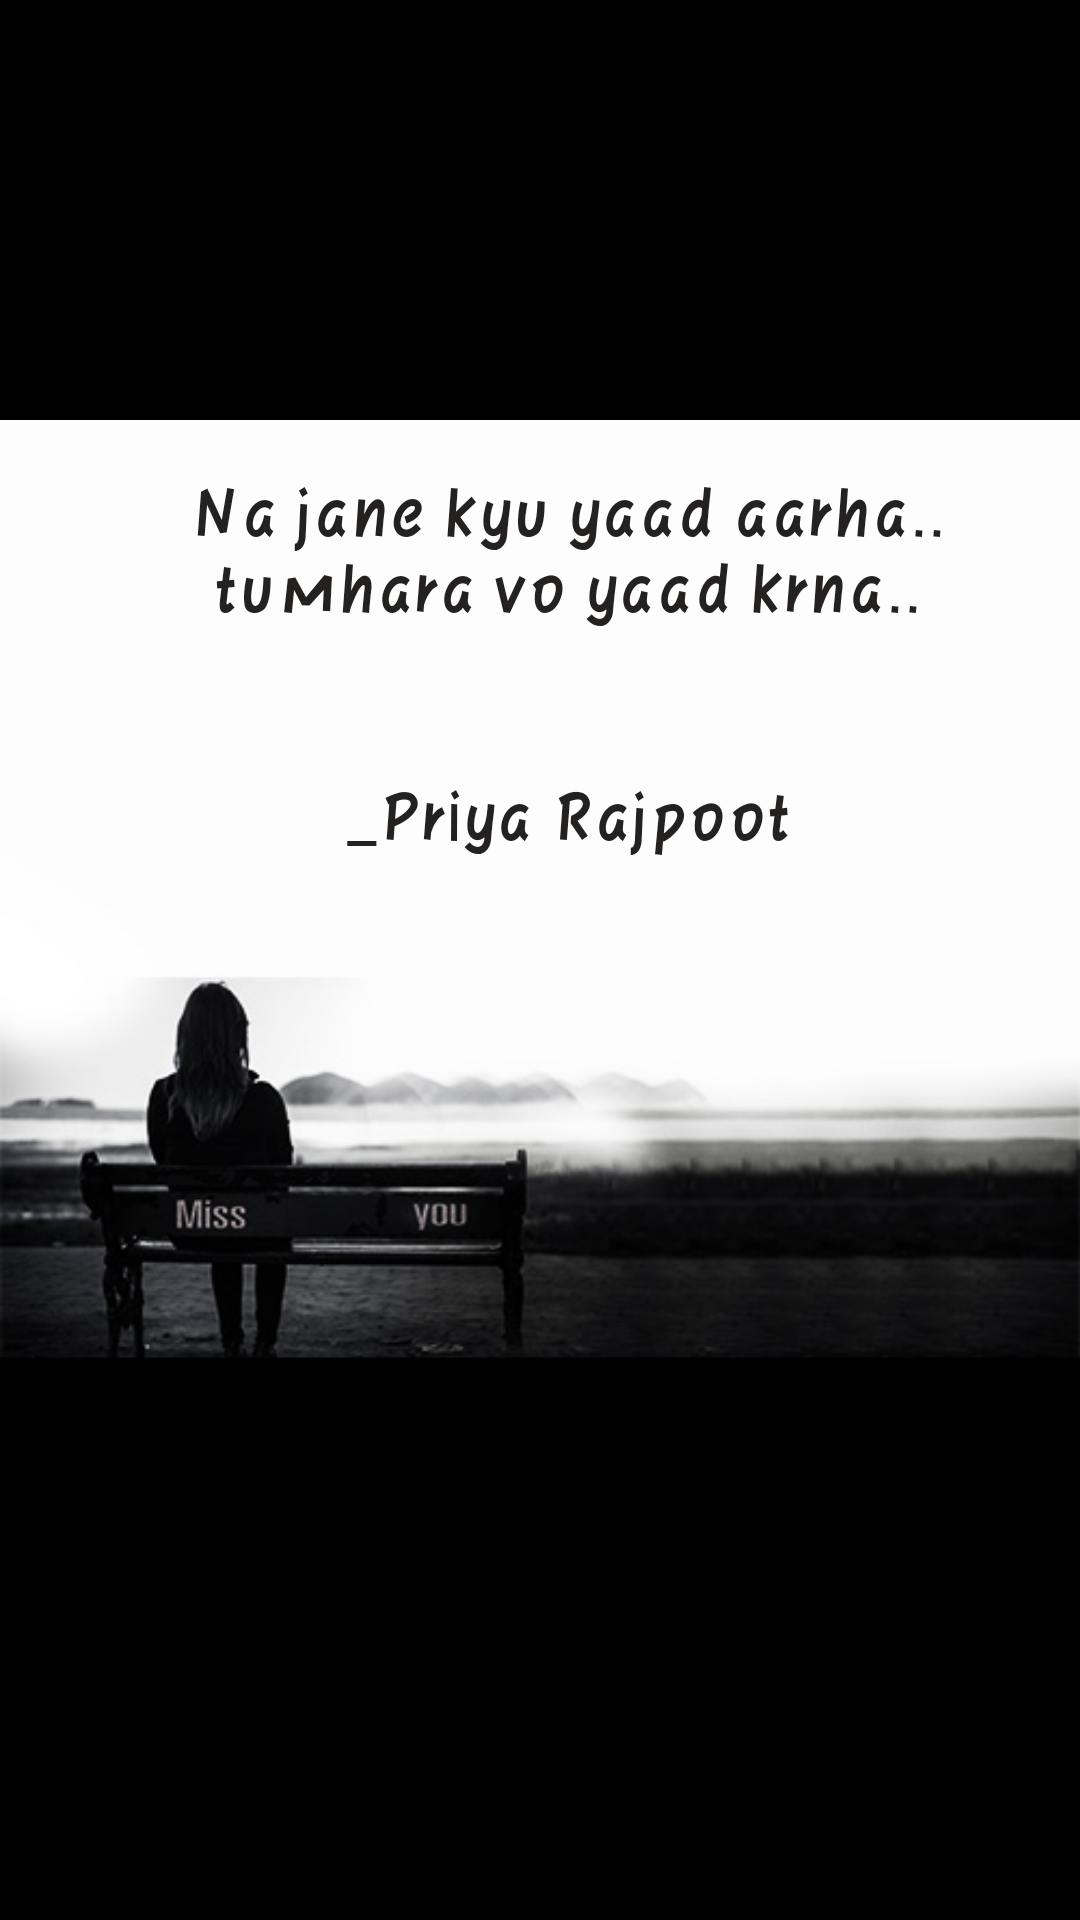 Miss You Quotes Na jane kyu yaad aarha.. tumhara vo yaad krna..   _Priya Rajpoot